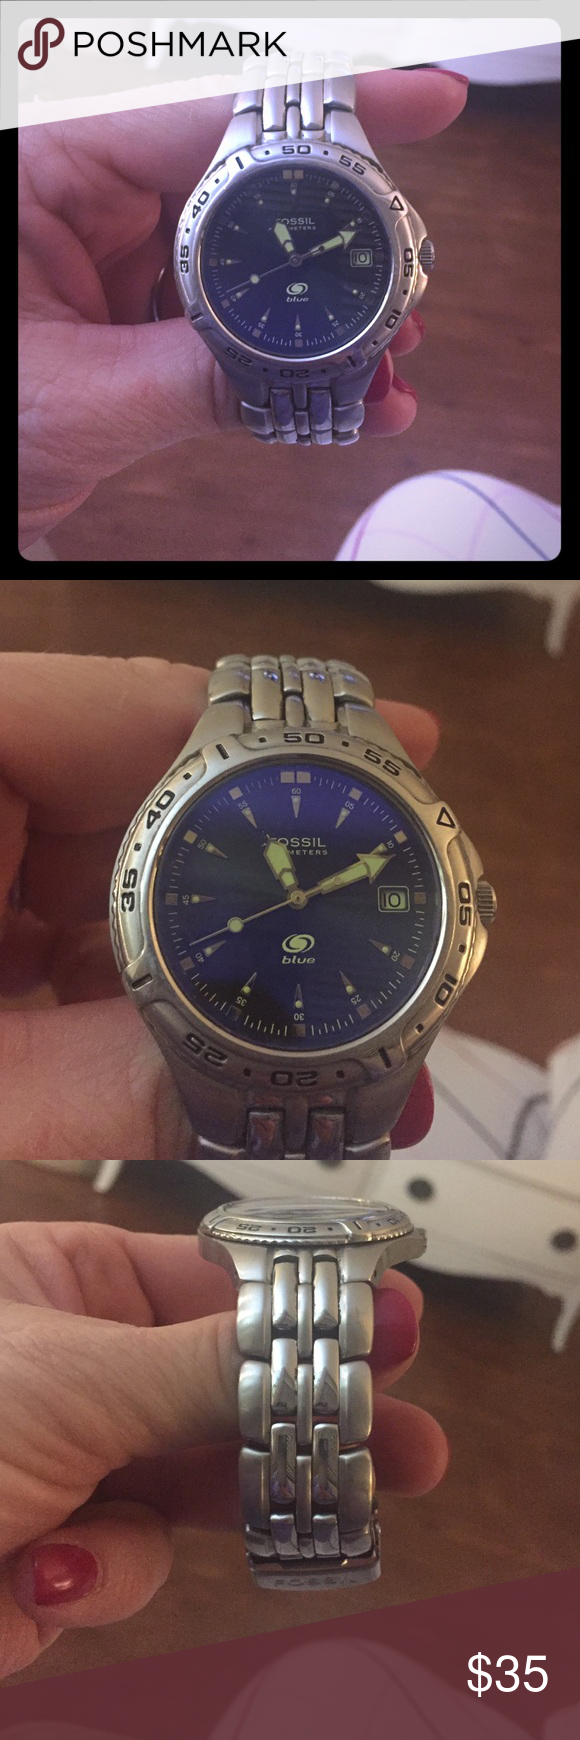 Men's Fossil Blue AM -3621 Watch 100 Meter Watch. This Beautiful Fossil blue watch is in great shop! It is silver with a beautiful blue face. It is very gently used!! Fossil Accessories Watches